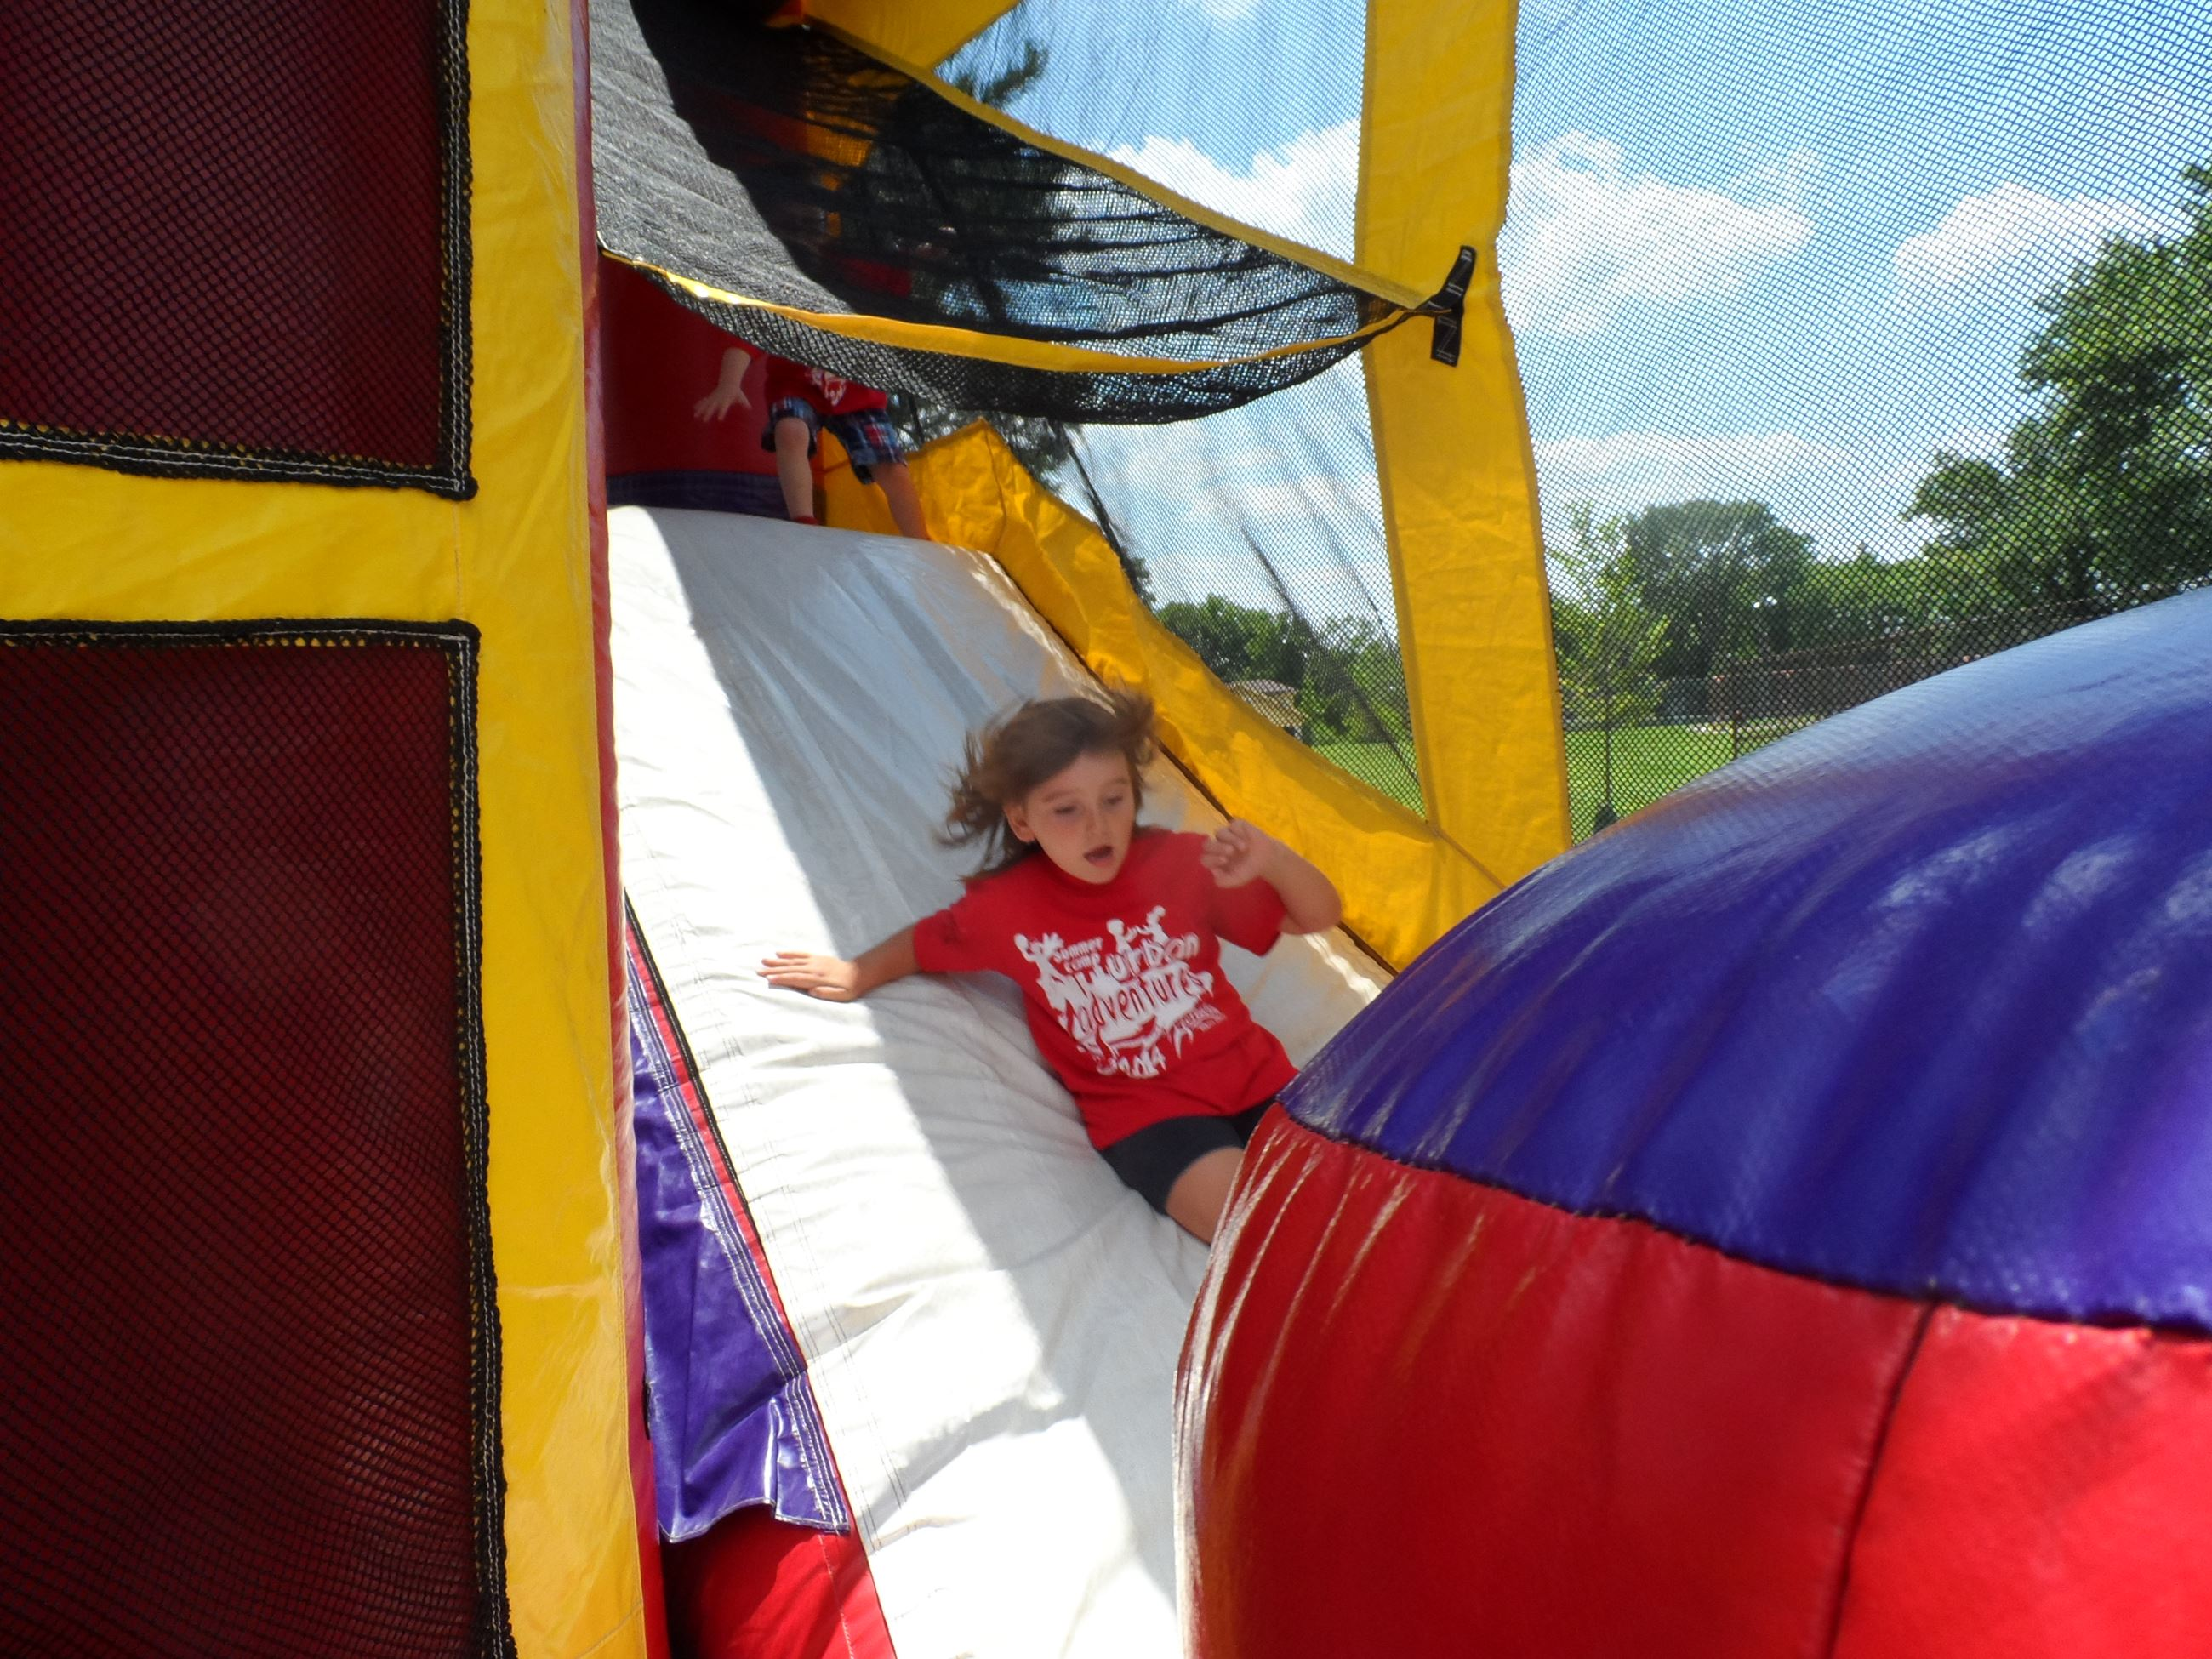 Camber on inflatable play house